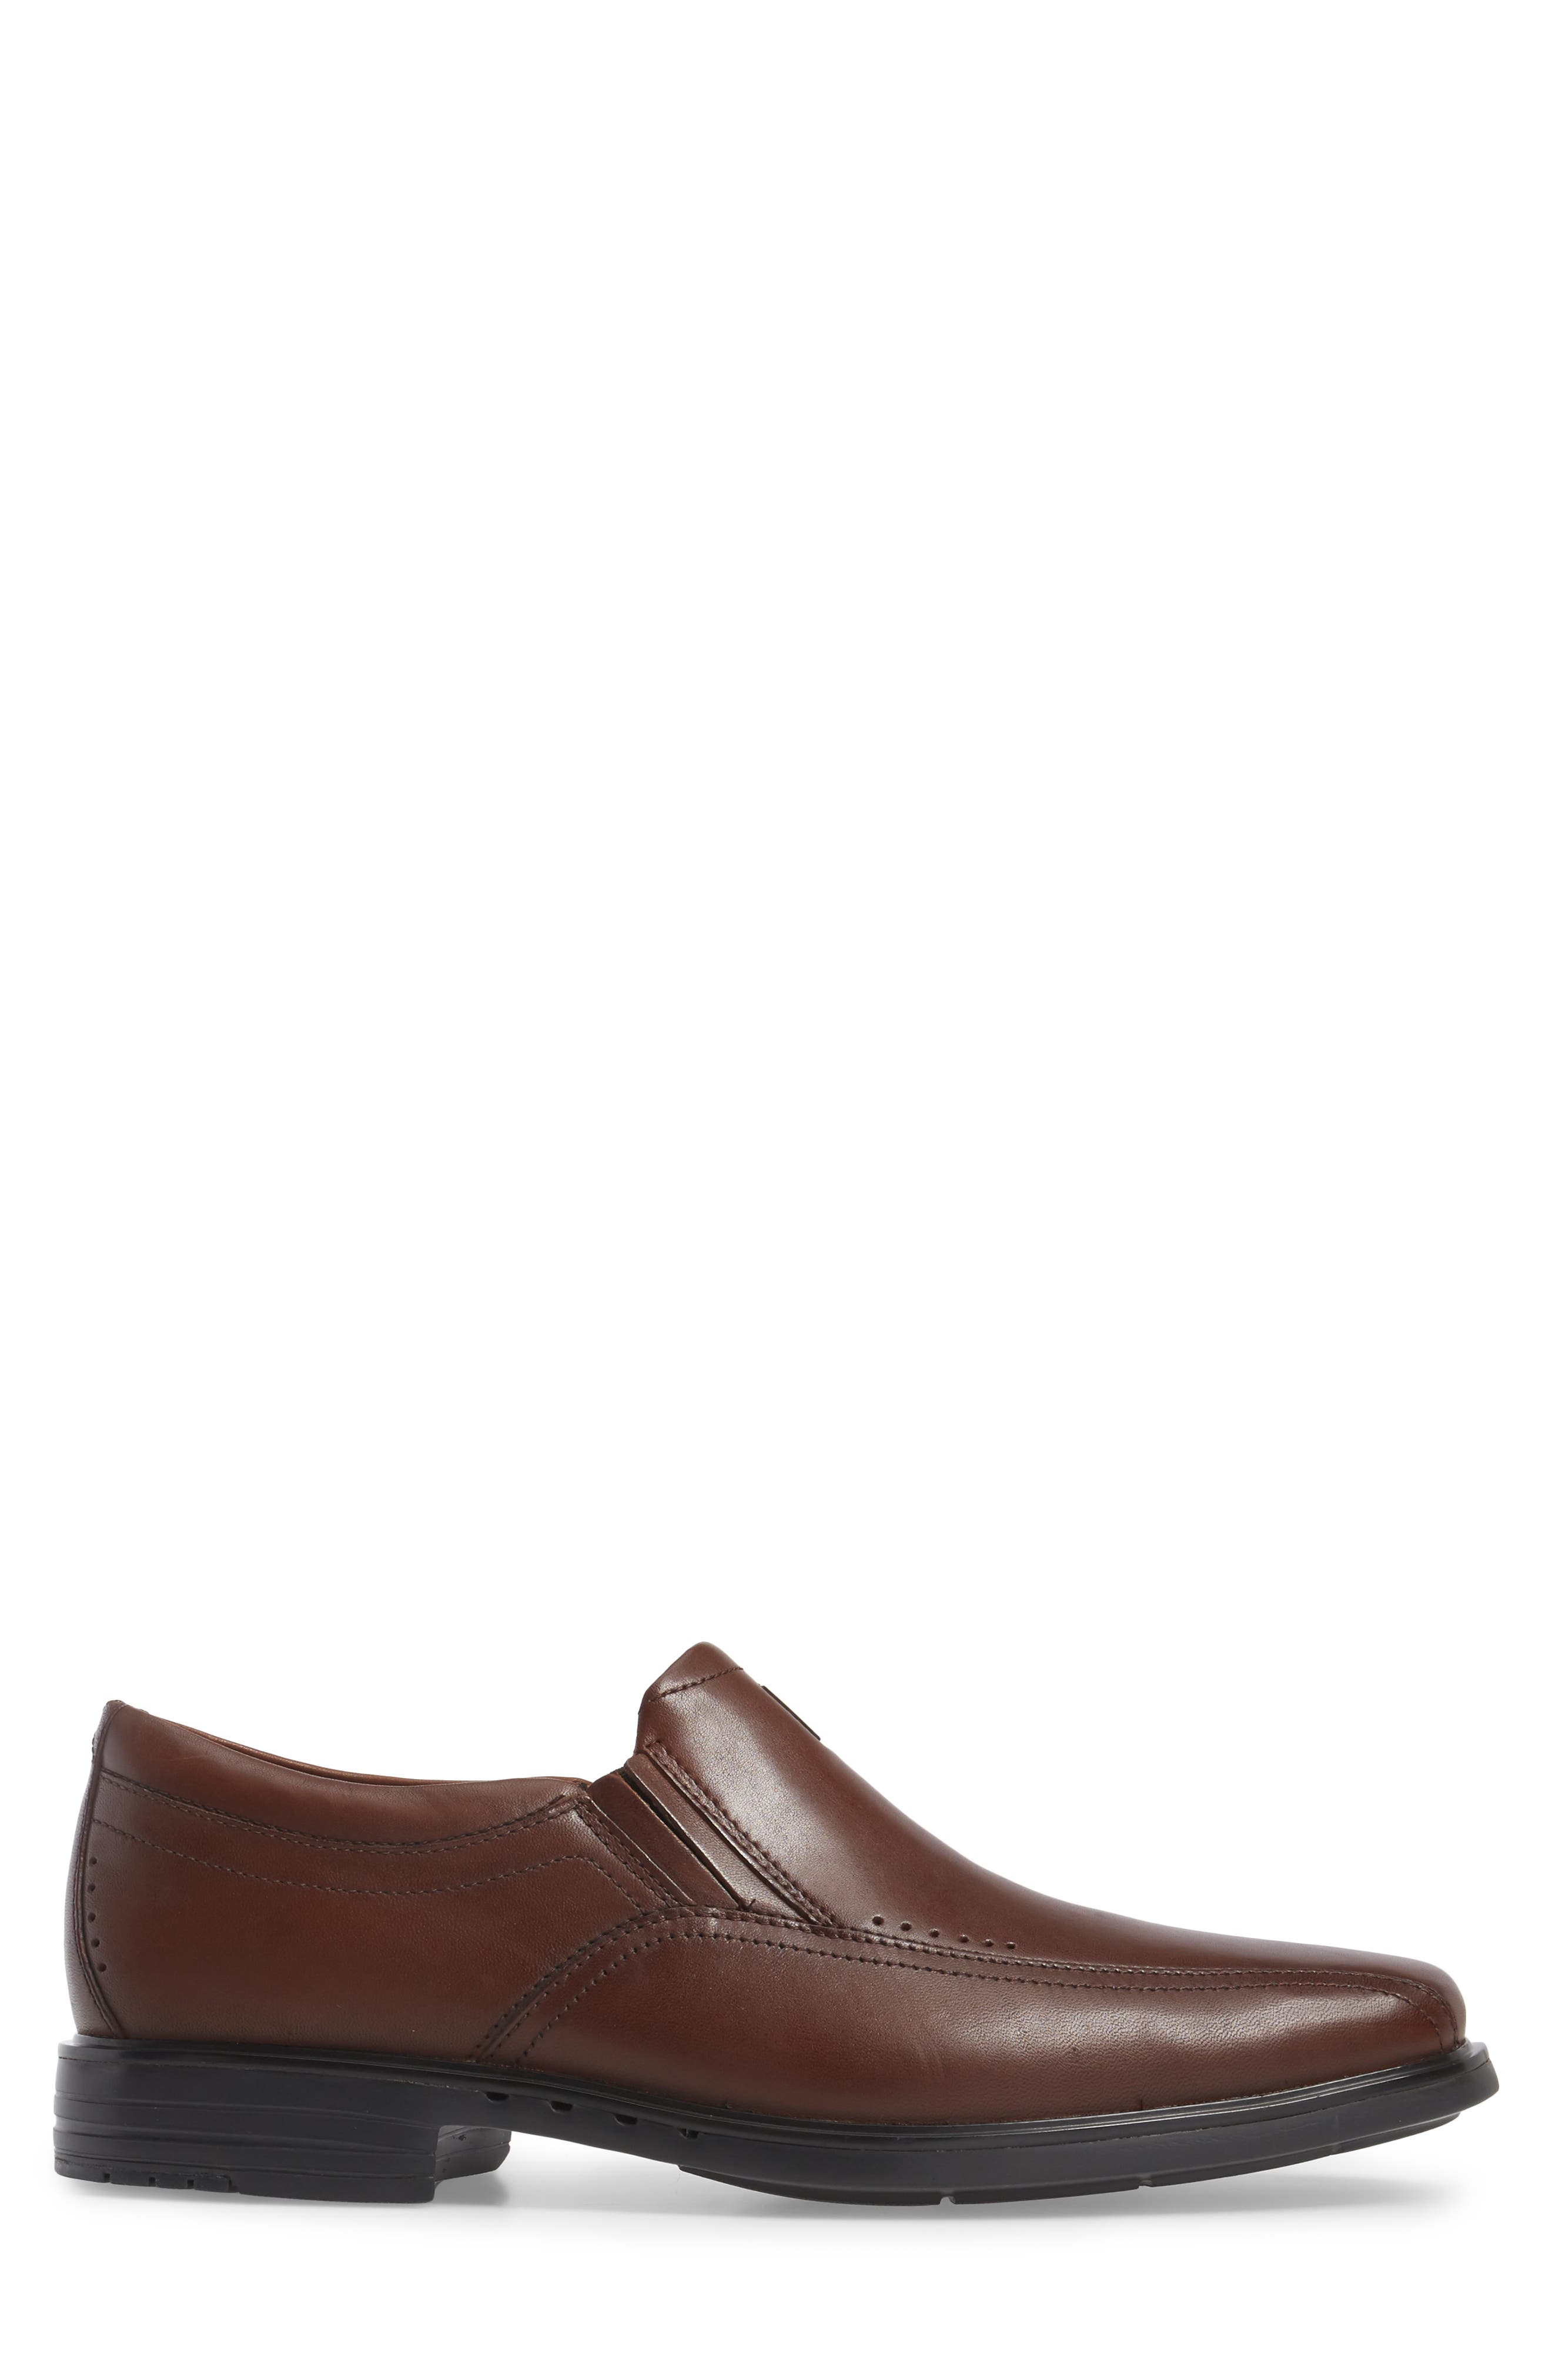 Un.Sheridan Go Loafer,                             Alternate thumbnail 3, color,                             Brown Leather